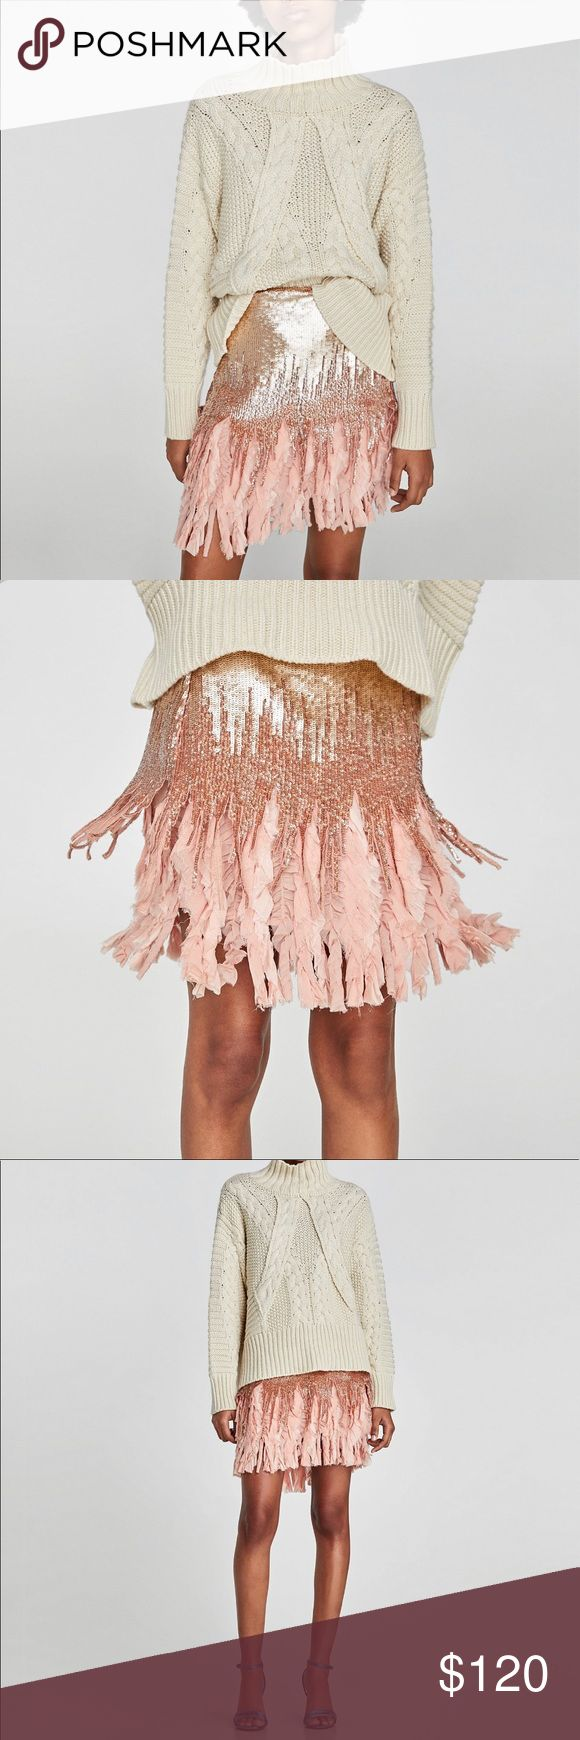 ZARA CONTRASTING SEQUIN MINI SKIRT Zara contrasting Sequin Mini Skirt with an almost fringe like Detail at the bottom. Really pretty pink/peach color. Size large. Brand new with tags. Sold out at Zara. Zara Skirts Mini